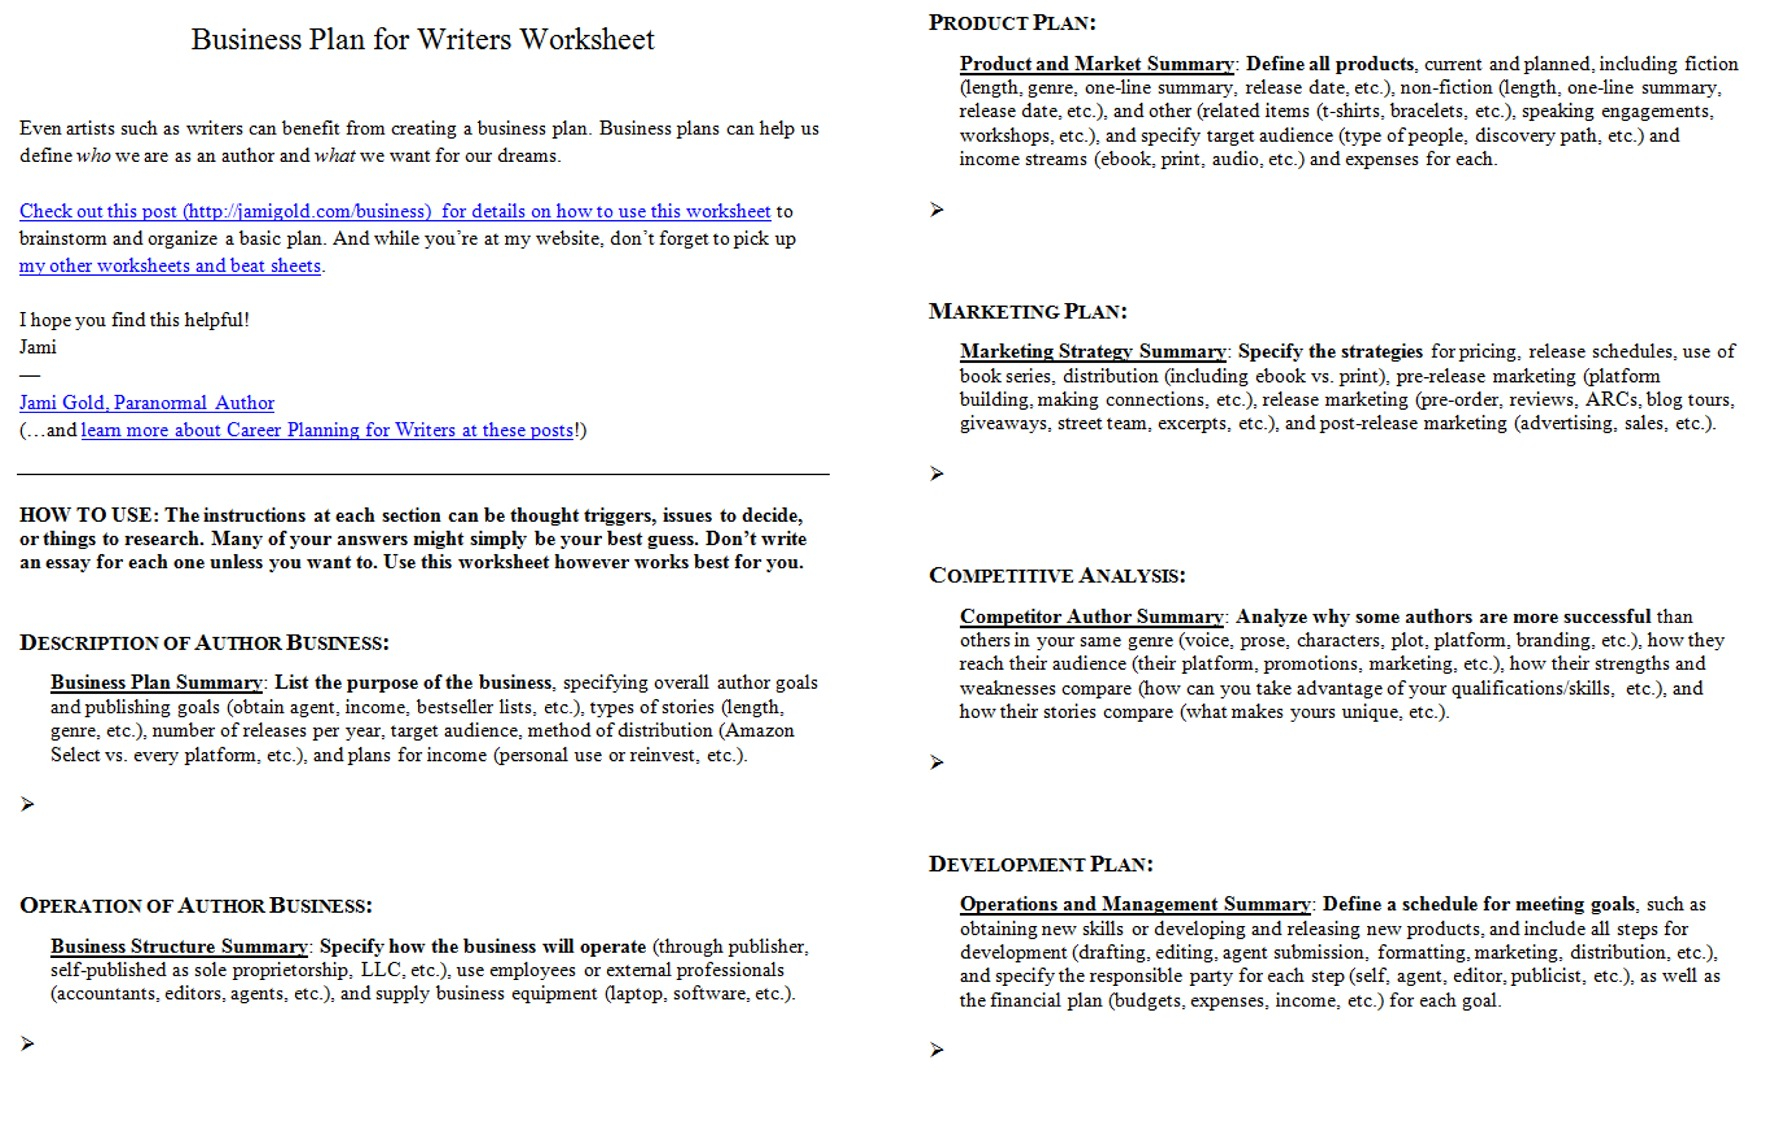 Weirdmailus  Scenic Worksheets For Writers  Jami Gold Paranormal Author With Outstanding Screen Shot Of Both Pages Of The Business Plan For Writers Worksheet With Amazing As Physics Worksheets Also Grammar Exercises For Kids Worksheet In Addition Multiplying Decimals Worksheets Word Problems And Counting In Tens Worksheet Year  As Well As Holt Science Biology Science Skills Worksheets Additionally Simple Algebra Worksheets Ks From Jamigoldcom With Weirdmailus  Outstanding Worksheets For Writers  Jami Gold Paranormal Author With Amazing Screen Shot Of Both Pages Of The Business Plan For Writers Worksheet And Scenic As Physics Worksheets Also Grammar Exercises For Kids Worksheet In Addition Multiplying Decimals Worksheets Word Problems From Jamigoldcom